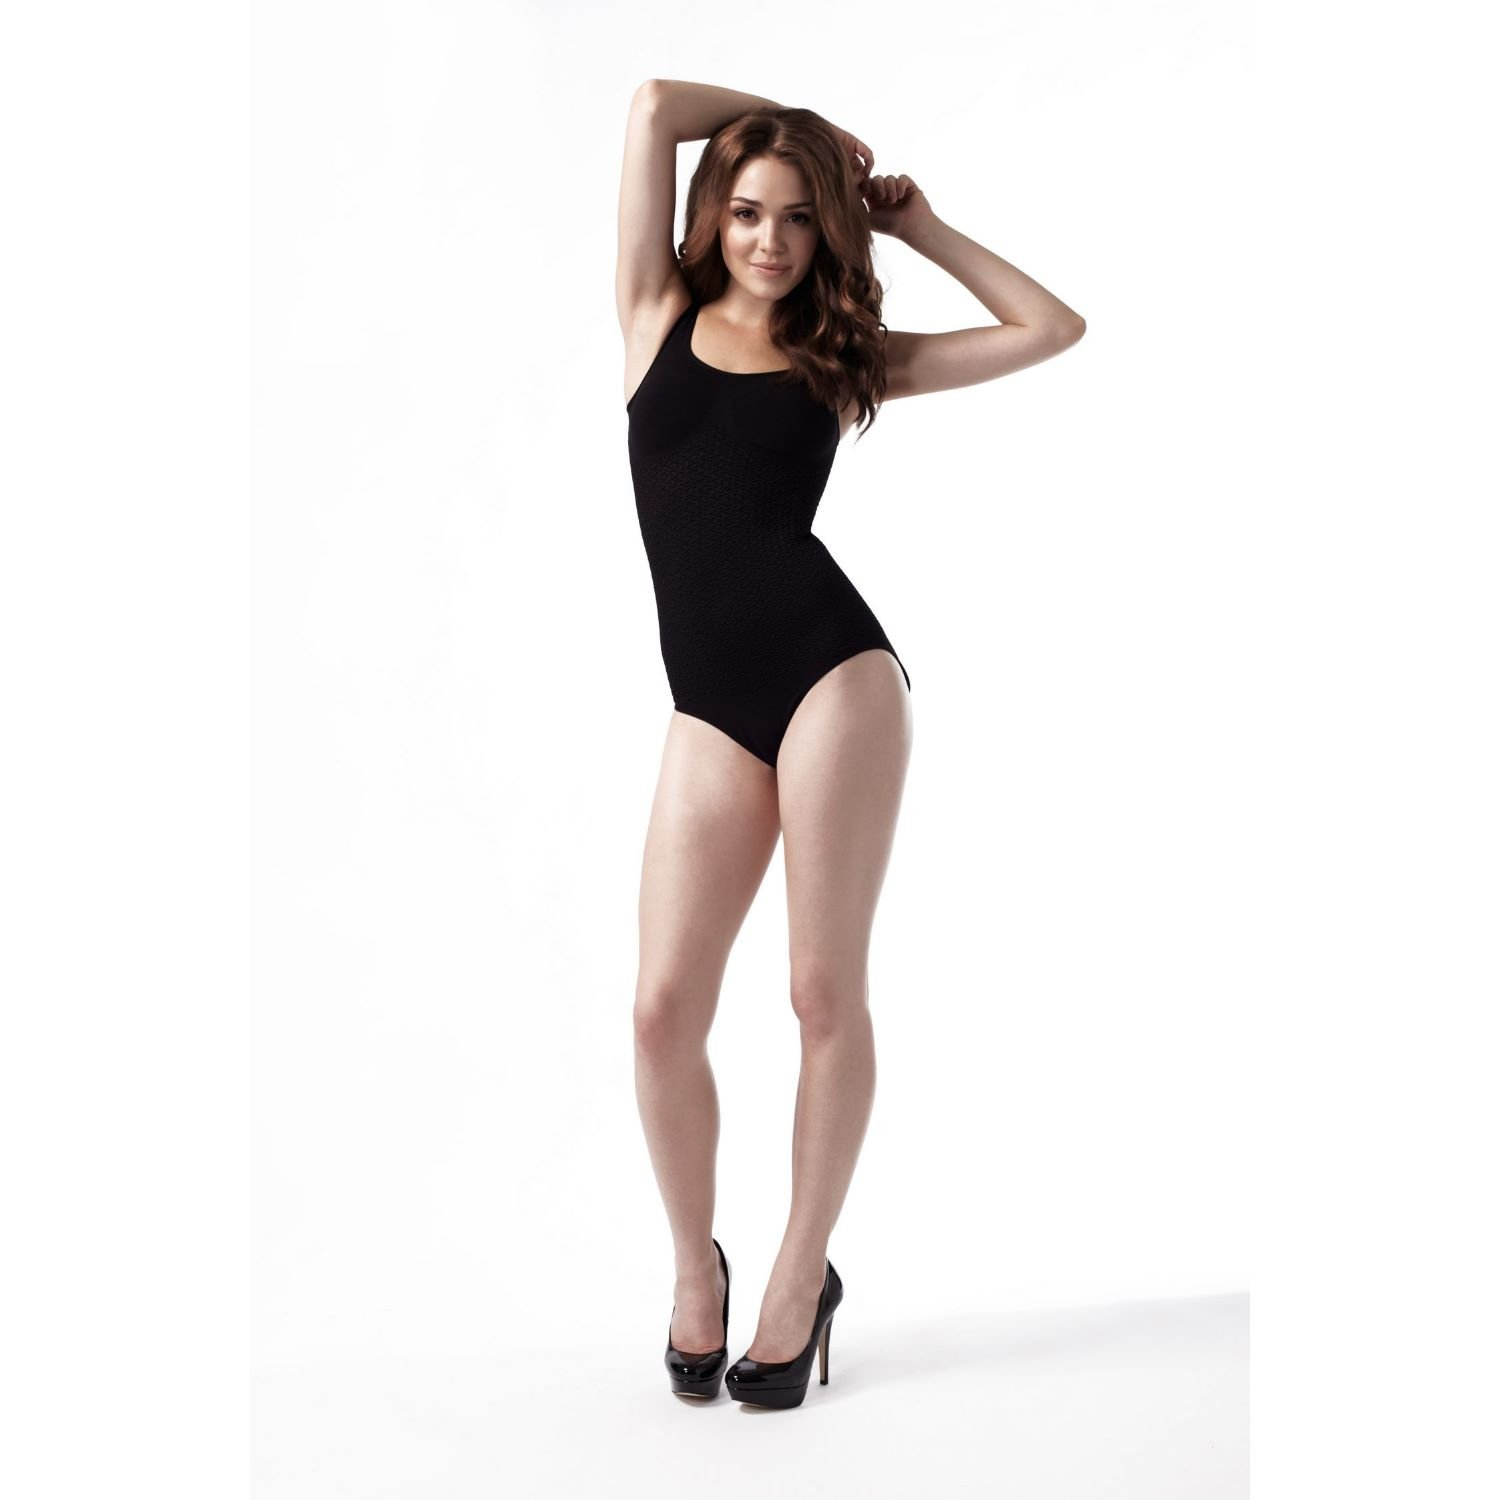 Peachy Pink London Anti-Cellulite Slimming Shapewear/All-in-One Body